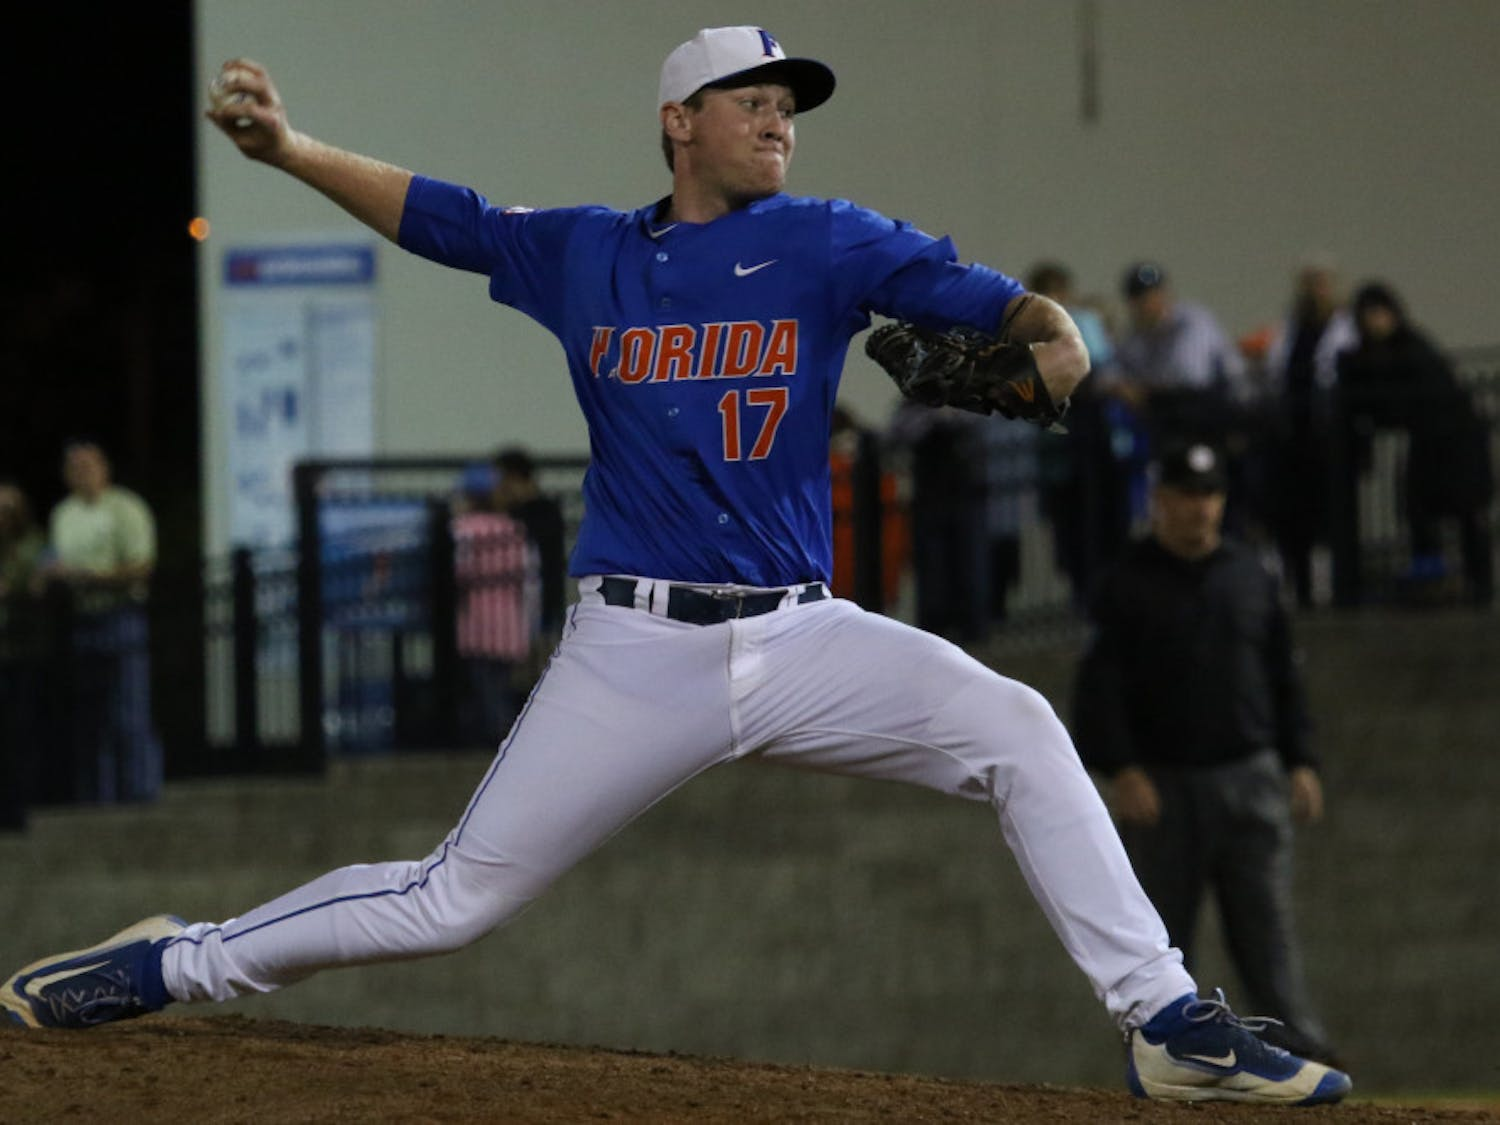 Michael Byrne earned his 10th save of the season Saturday against Missouri.